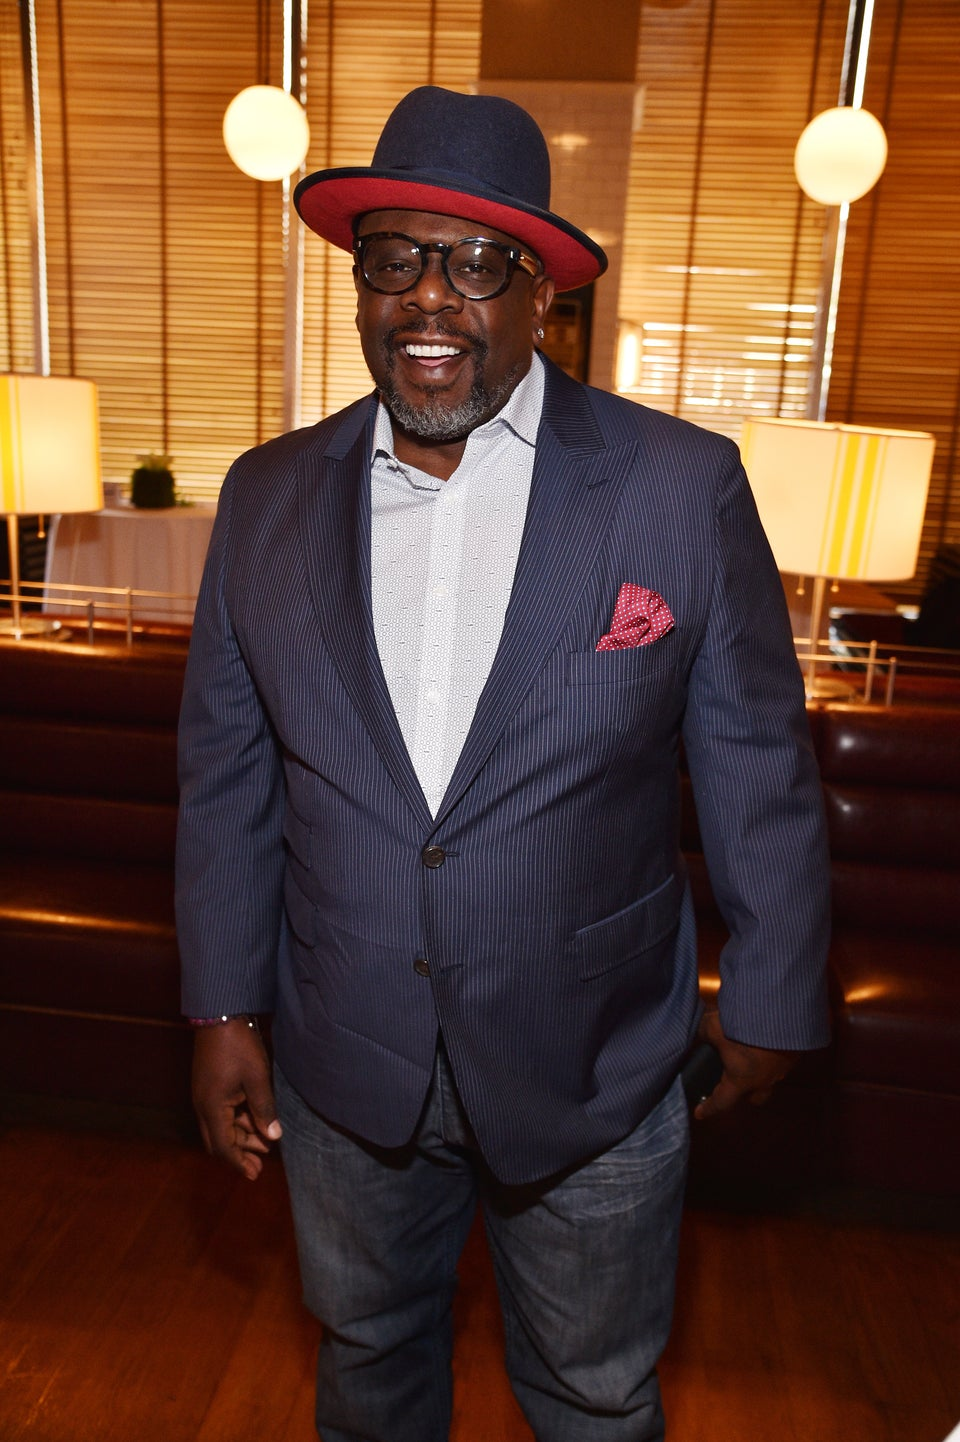 Cedric The Entertainer Is Suing Gas Company After Leak Allegedly Made His Family Sick